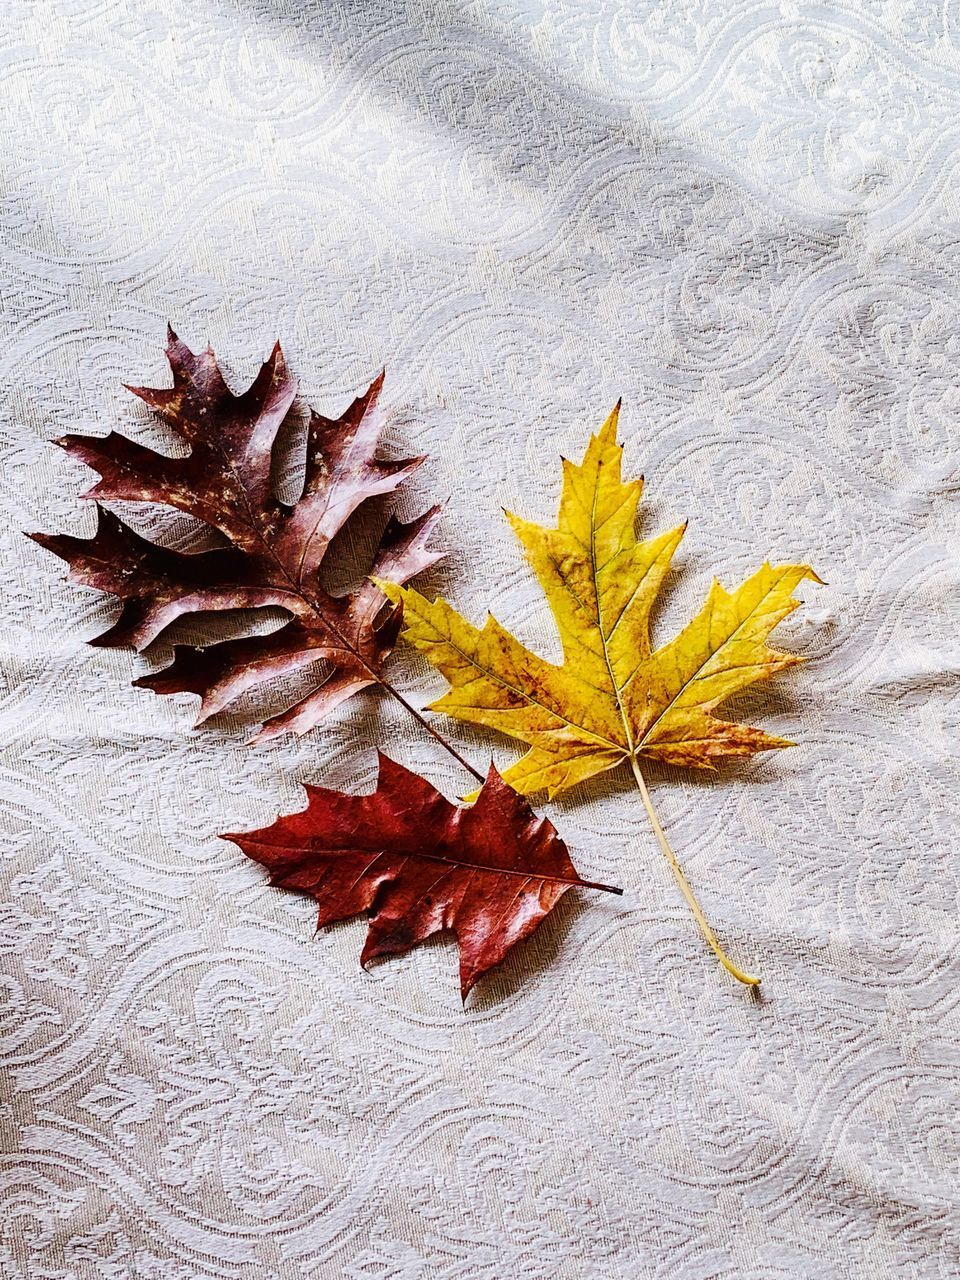 autumn, leaf, plant part, change, dry, nature, maple leaf, no people, close-up, directly above, plant, still life, yellow, vulnerability, outdoors, fragility, high angle view, table, leaves, day, natural condition, fall